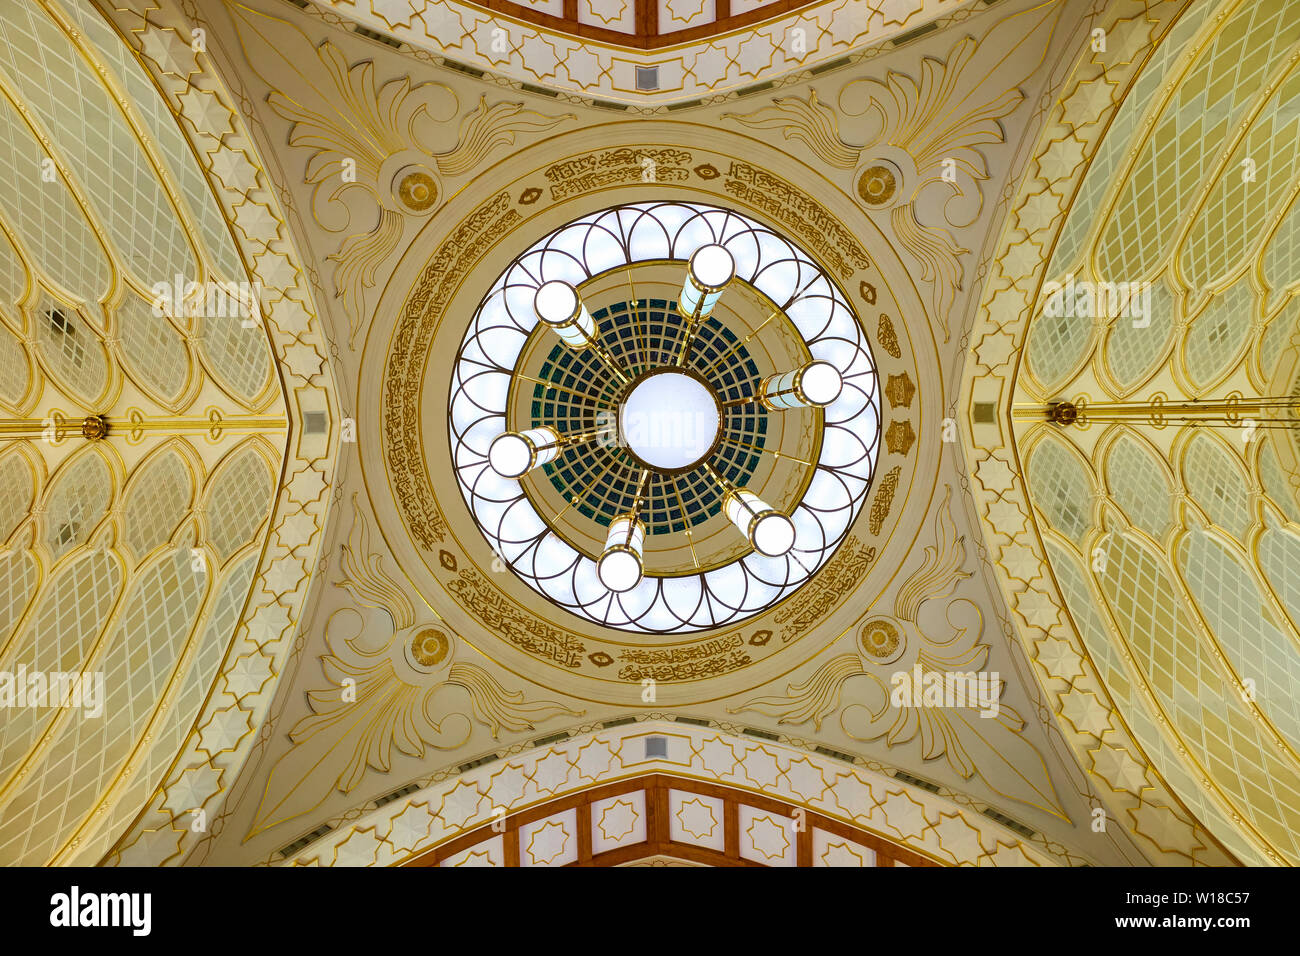 Interior view with dome of the Omar Ali Saifuddien mosque in downtown Bandar Seri Begawan,Brunei. - Stock Image